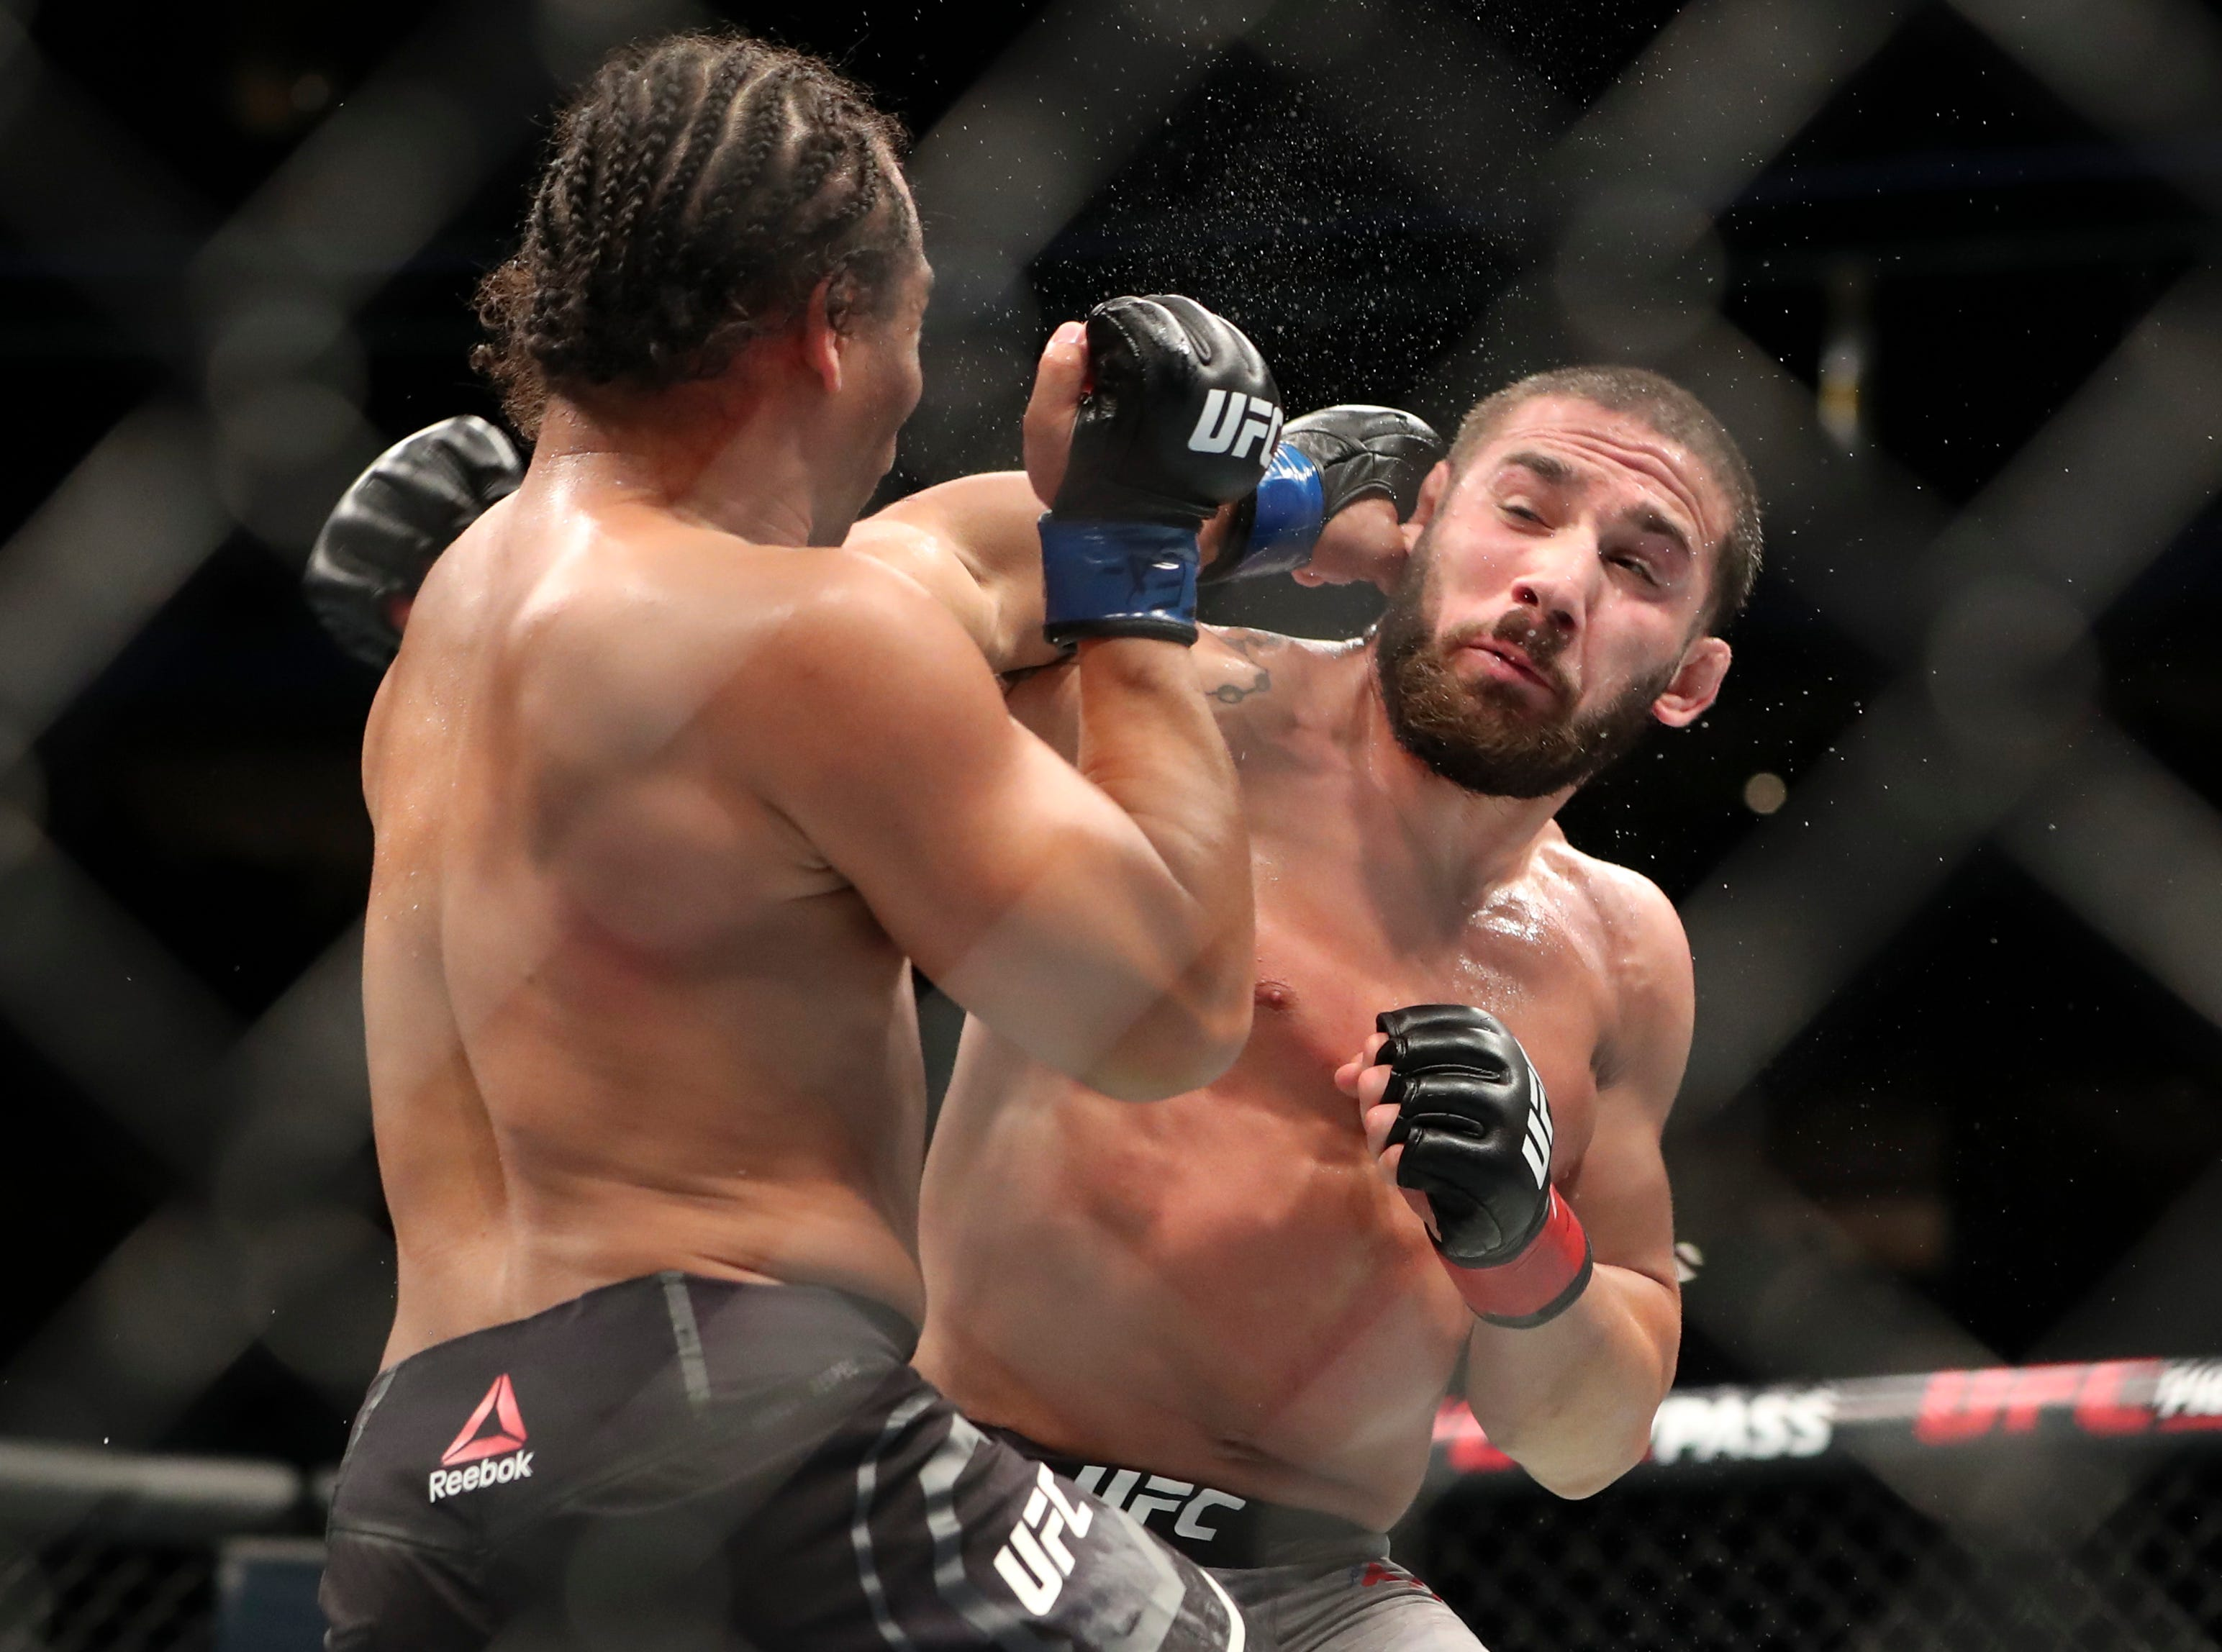 Jimmie Rivera (red gloves) fights John Dodson (blue gloves) during UFC 228 at American Airlines Center.